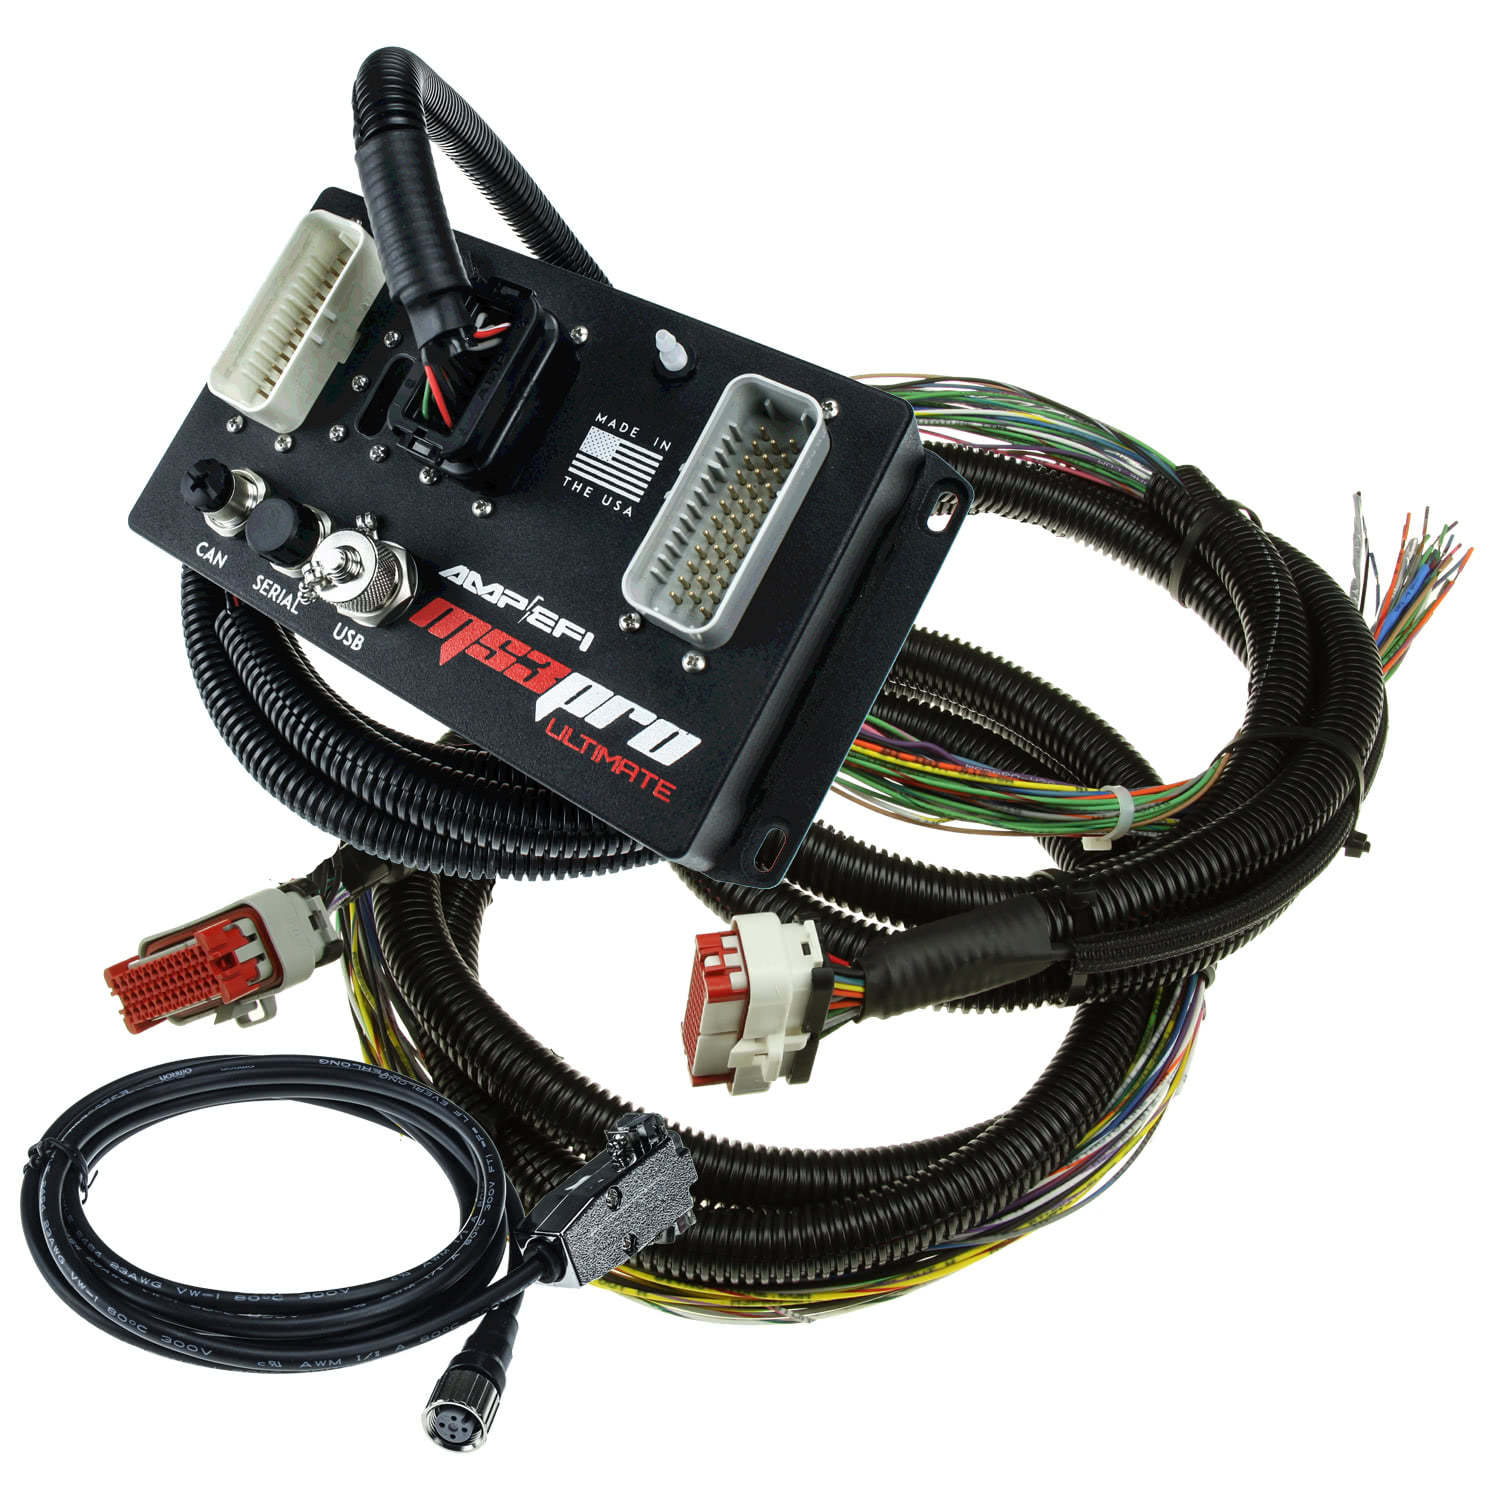 MS3Pro ULTIMATE with Universal Wire Harness